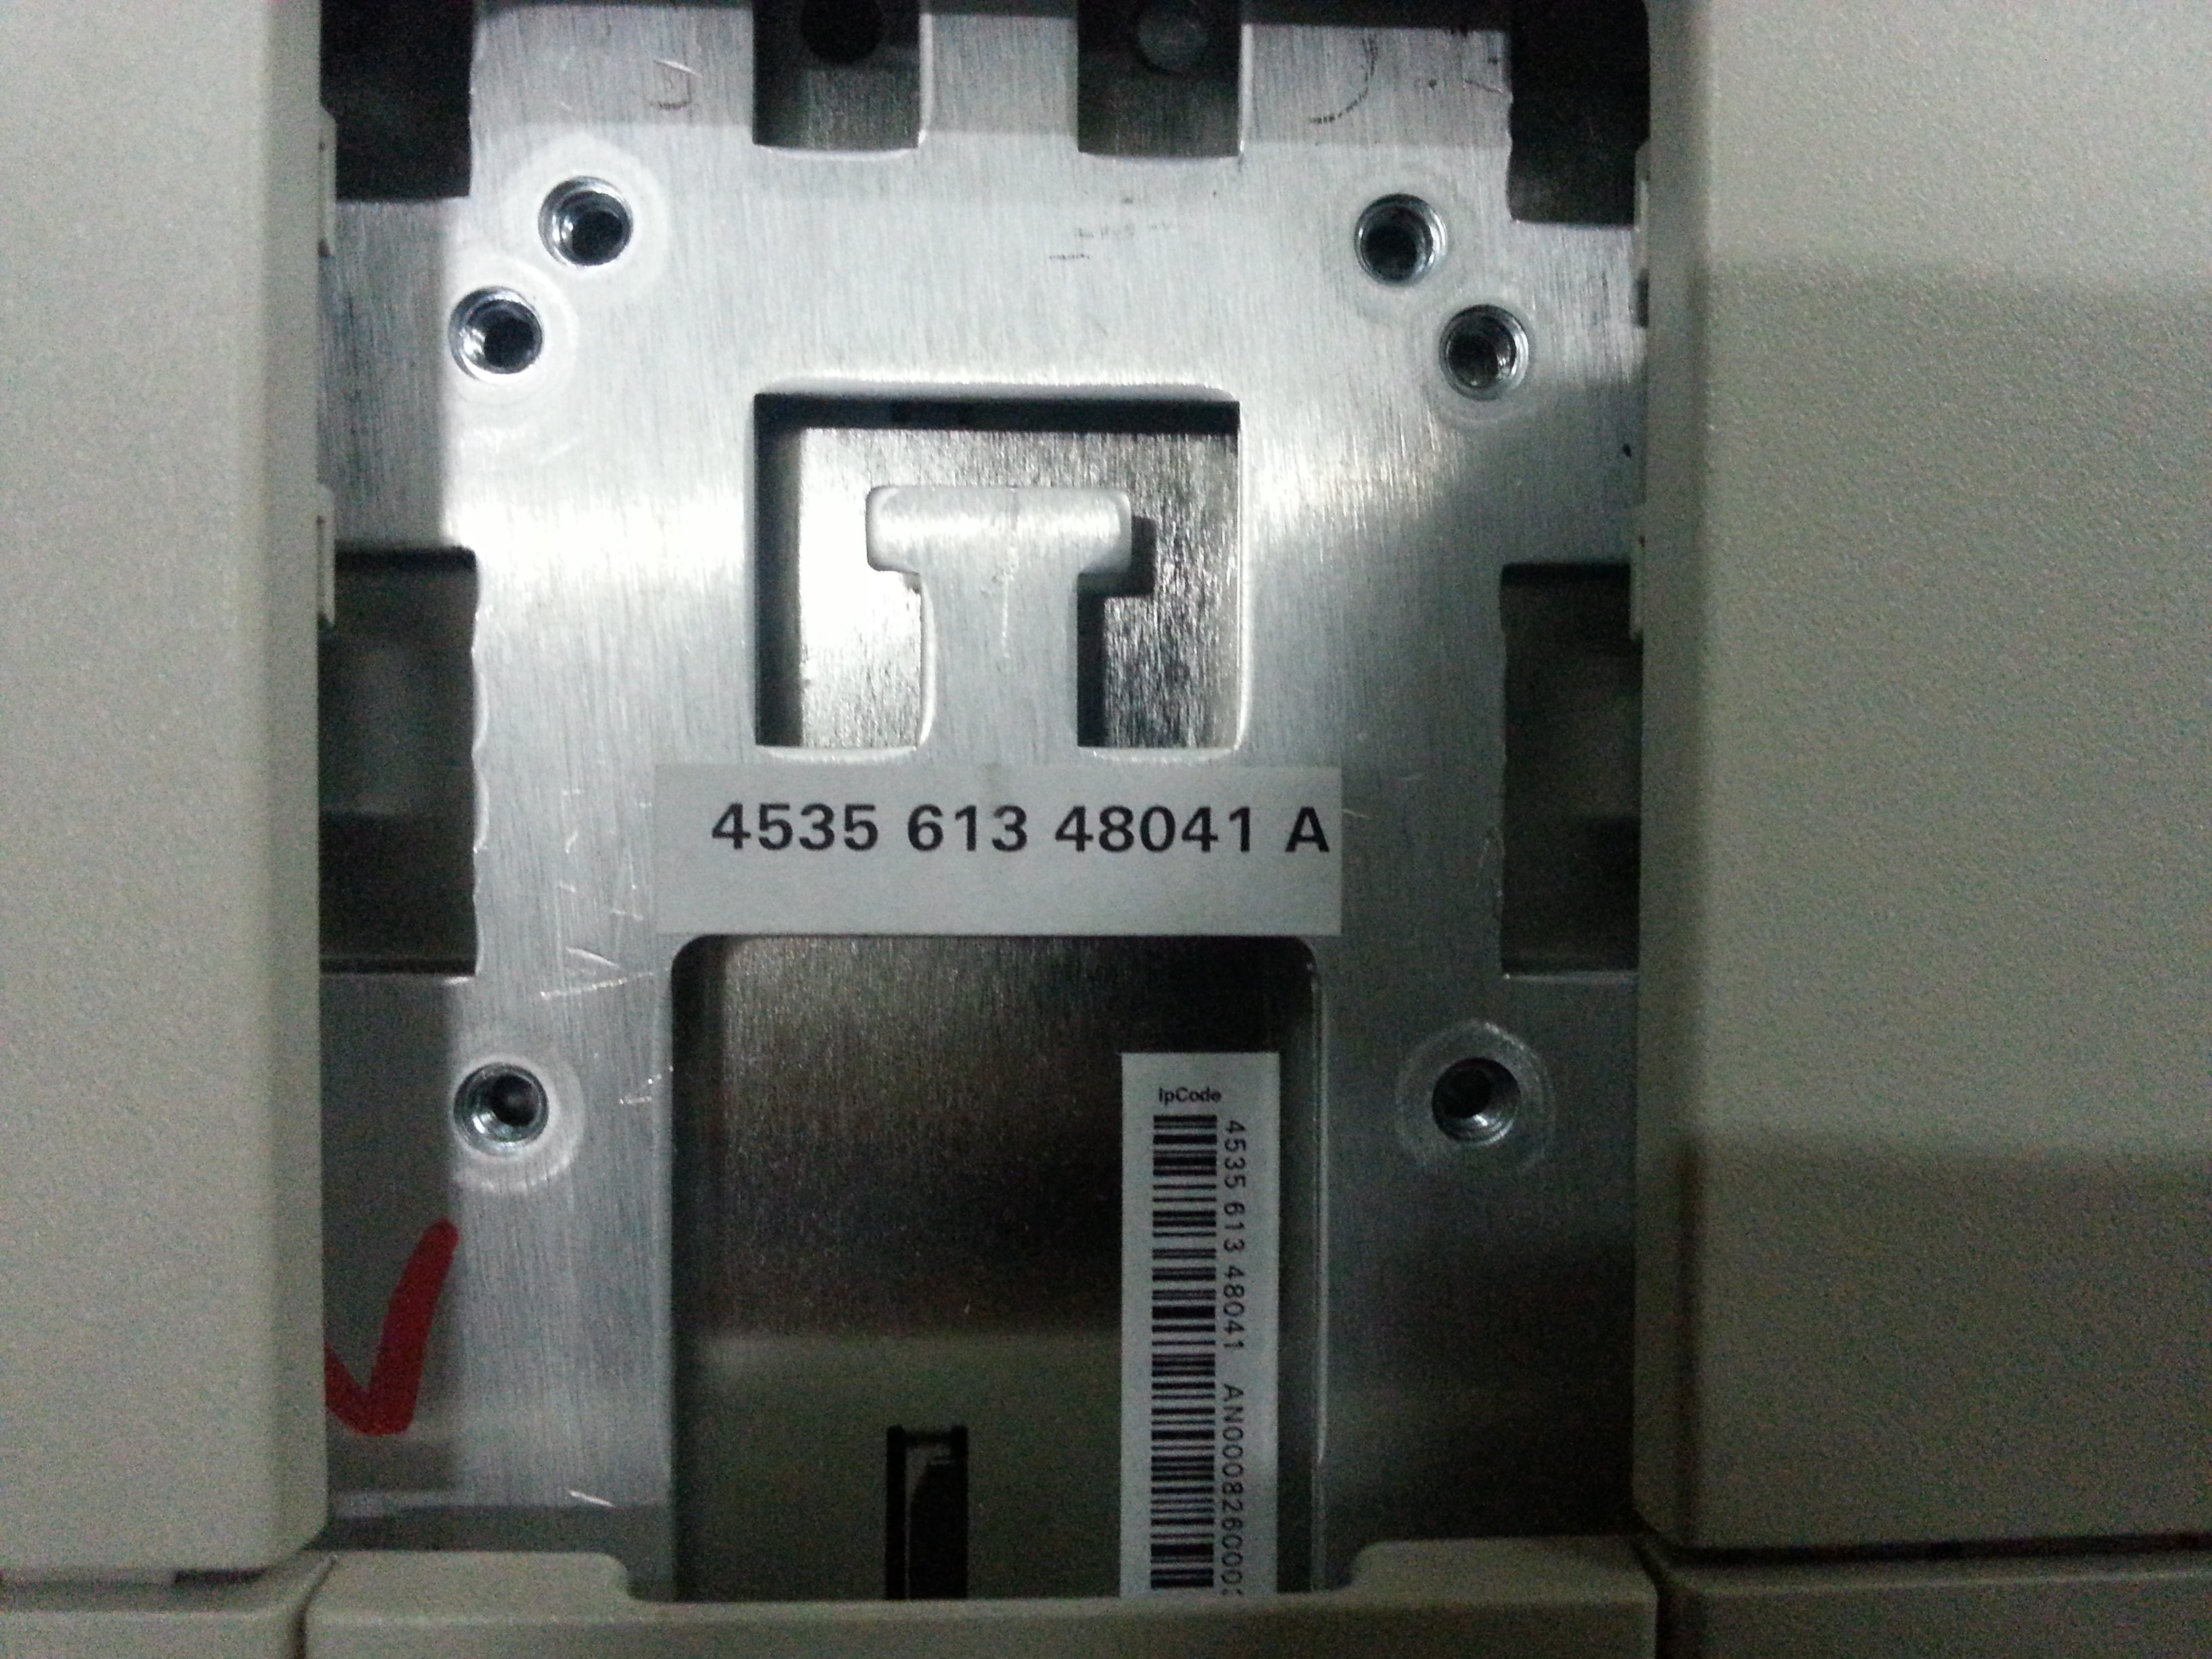 Repair 4535 613 48041 A PHILIPS PHILIPS MONITOR in Malaysia, Singapore, Thailand, Indonesia